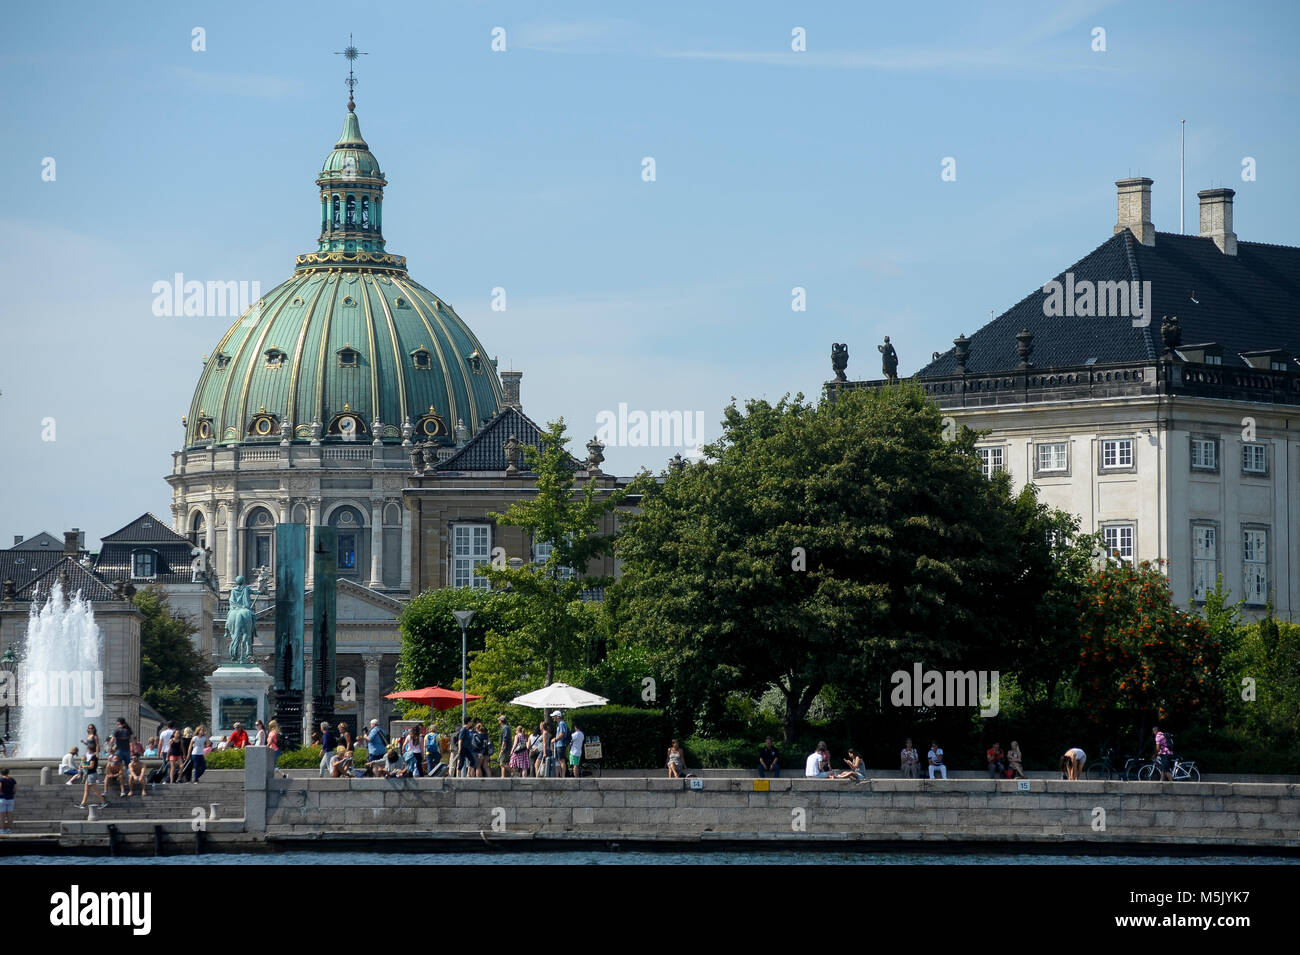 Rococo Frederiks Kirke (Frederik's Church) called also Marmorkirken (The Marble Church) designed by Nicolai - Stock Image